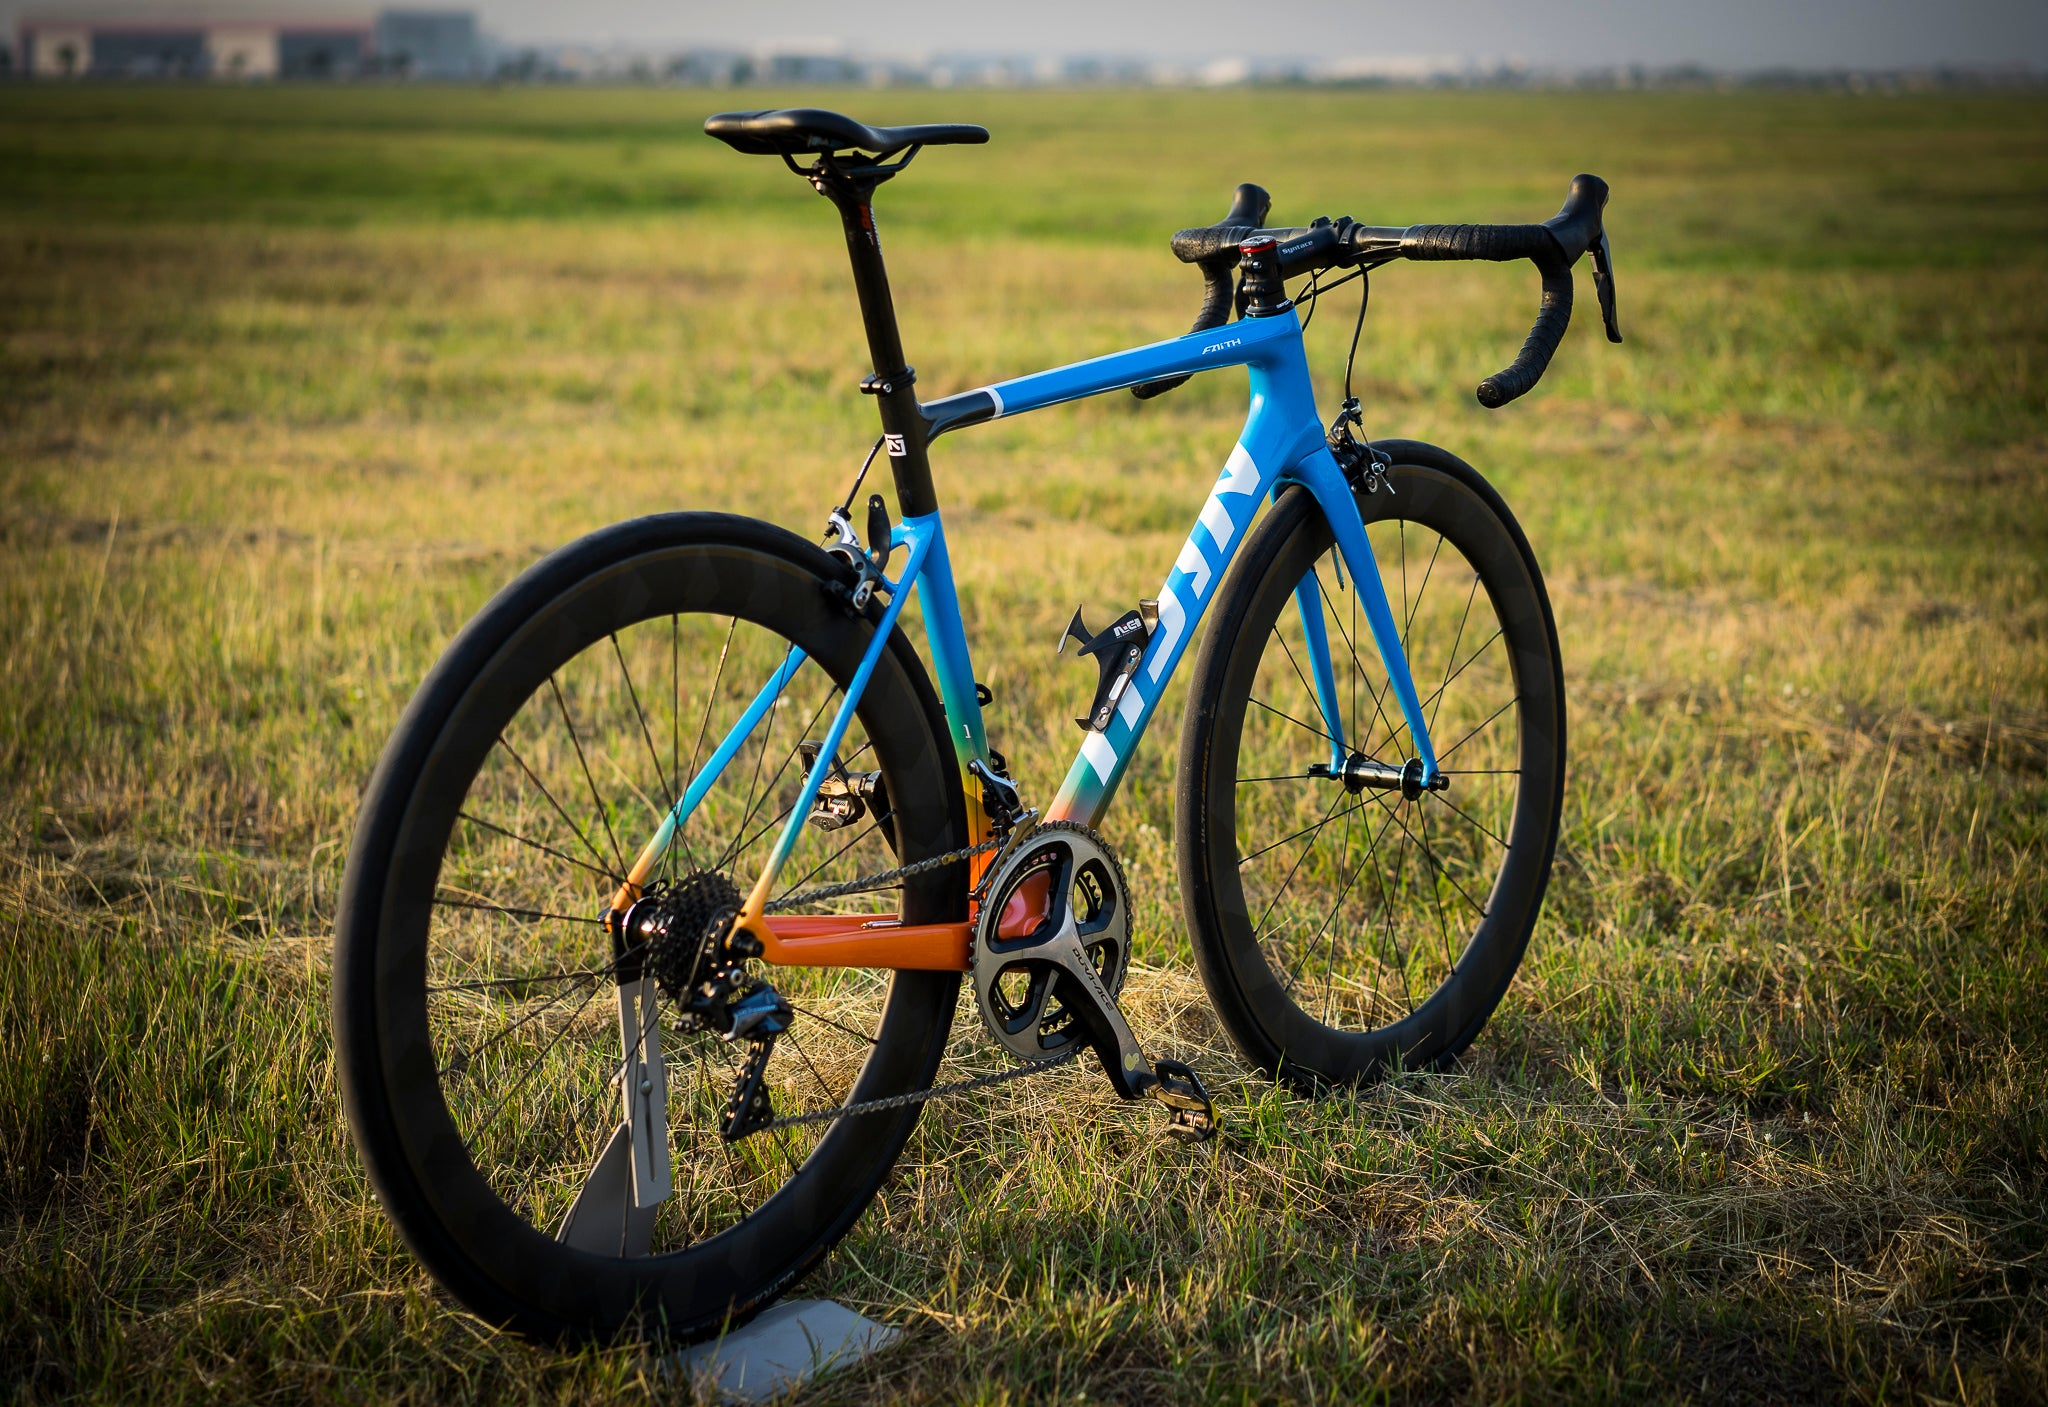 Nich Faith2 Road bike